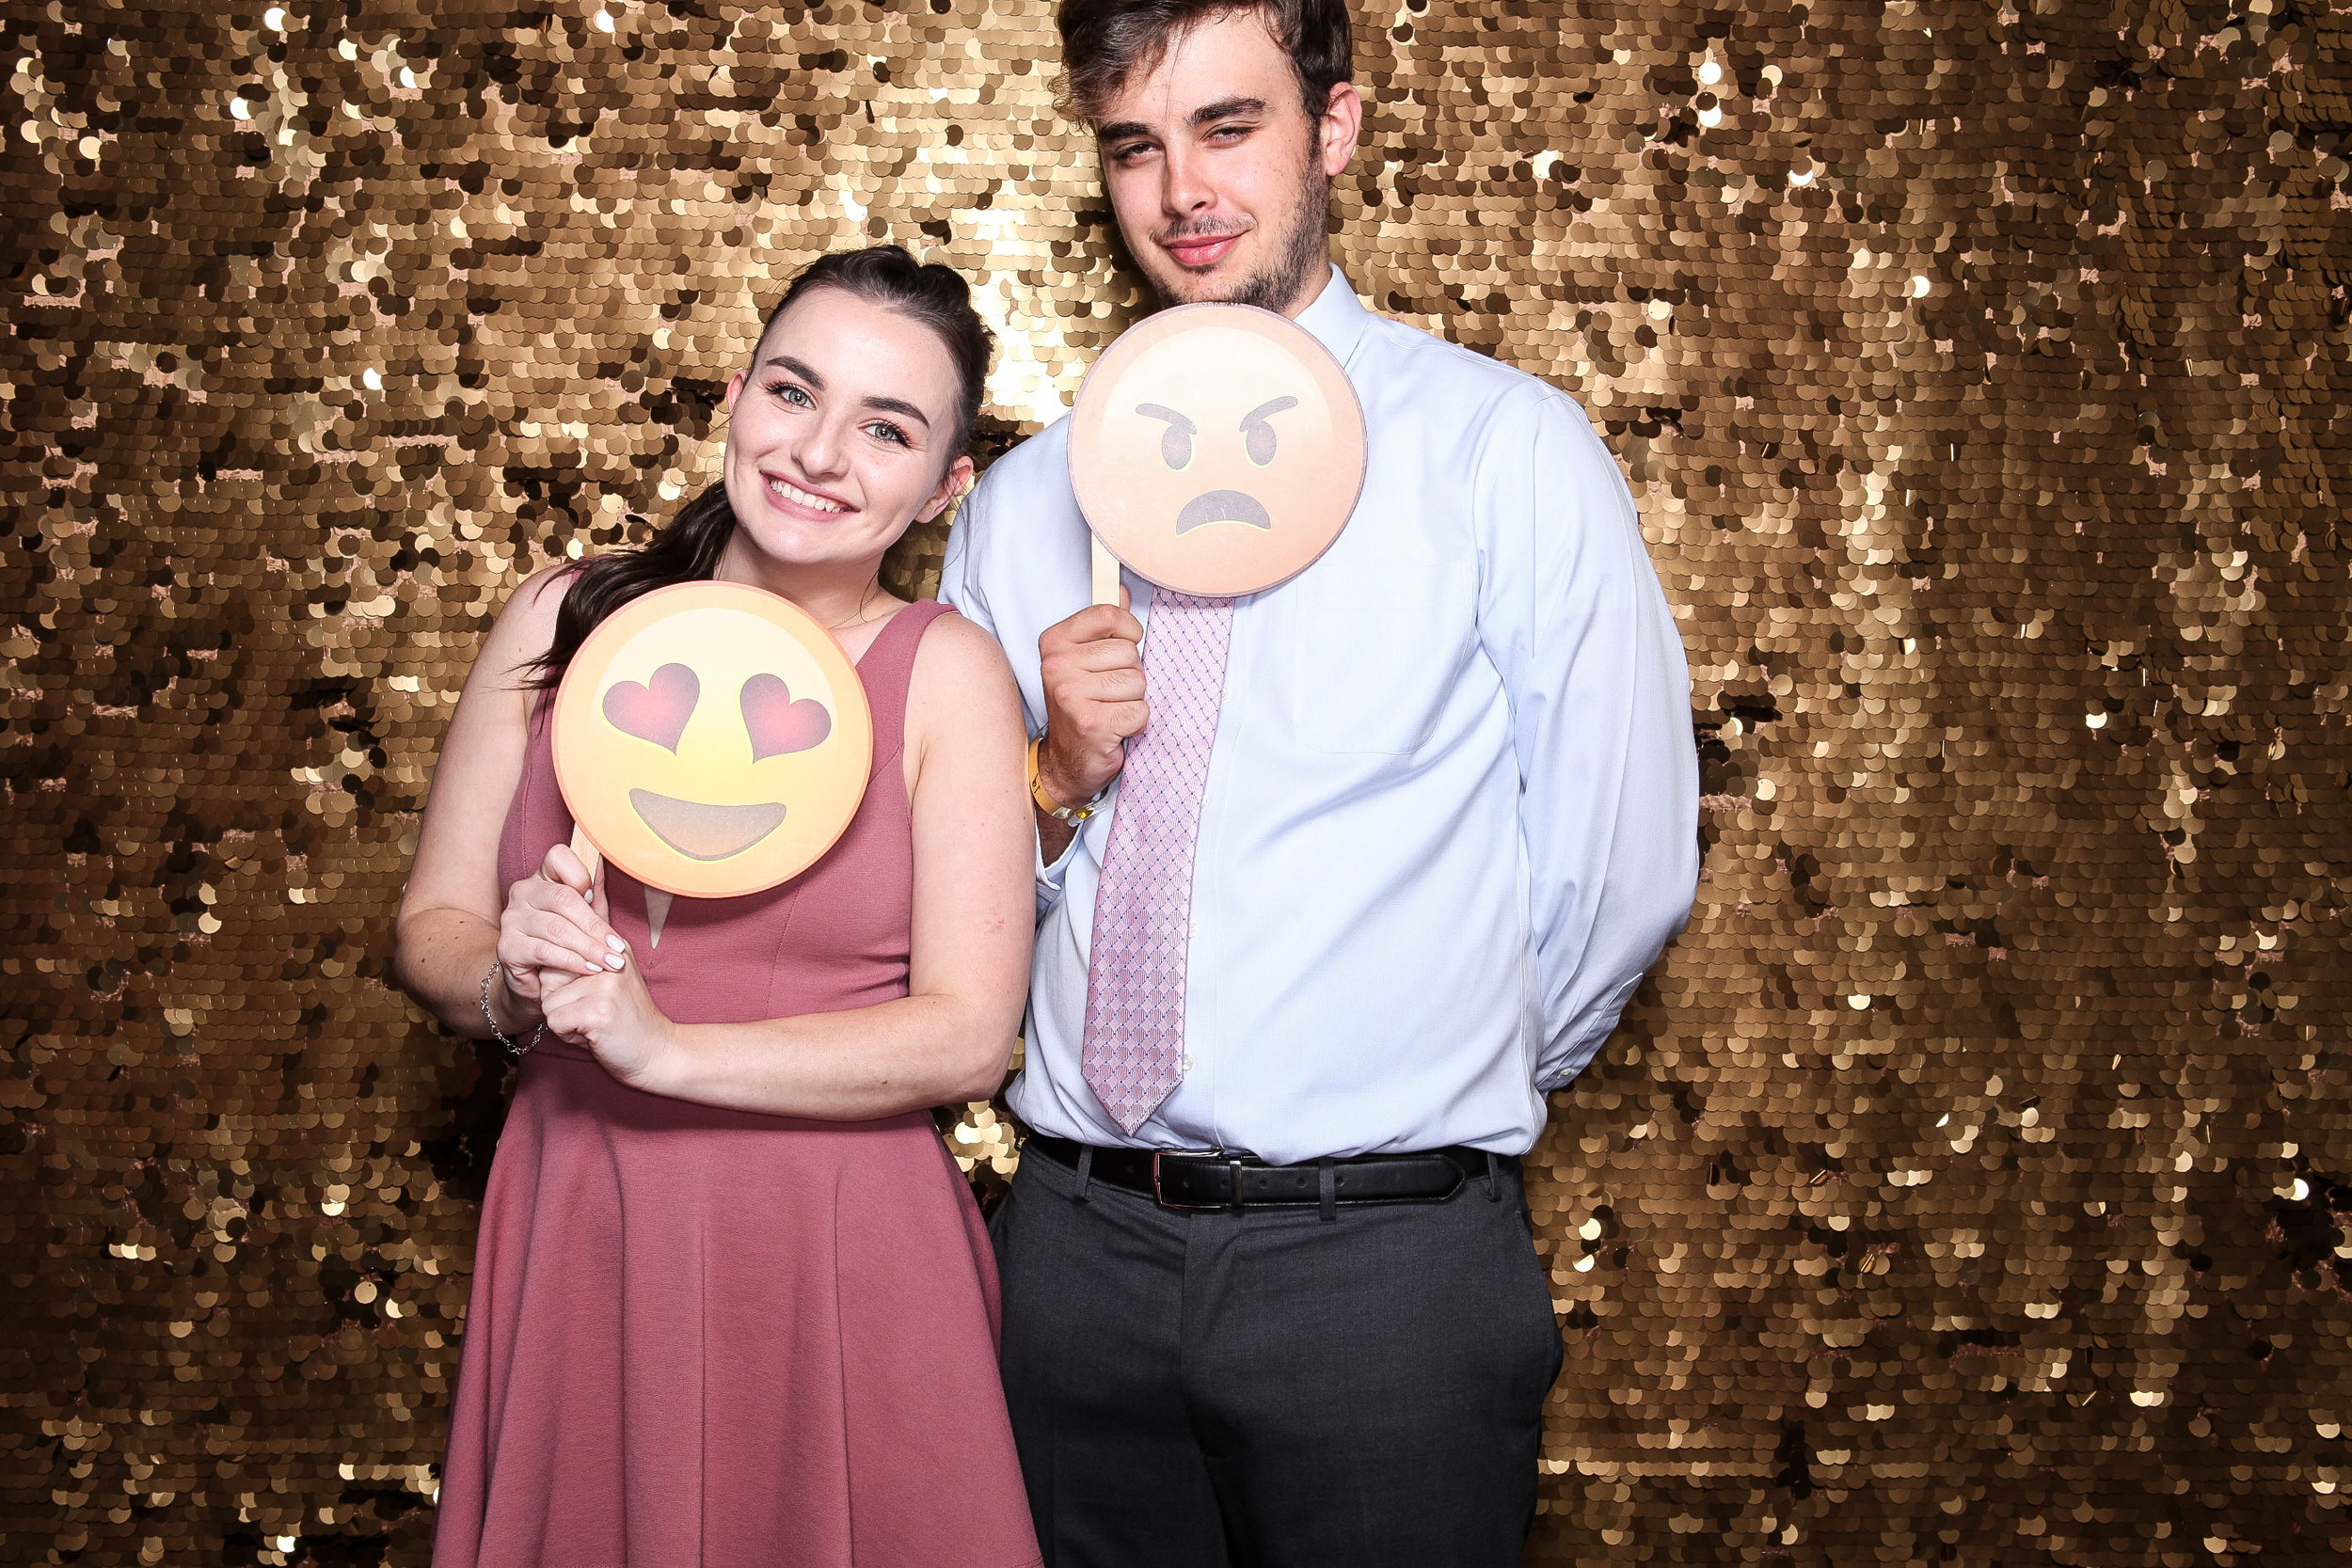 20190503_Adelphi_Senior_Formal-253.jpg